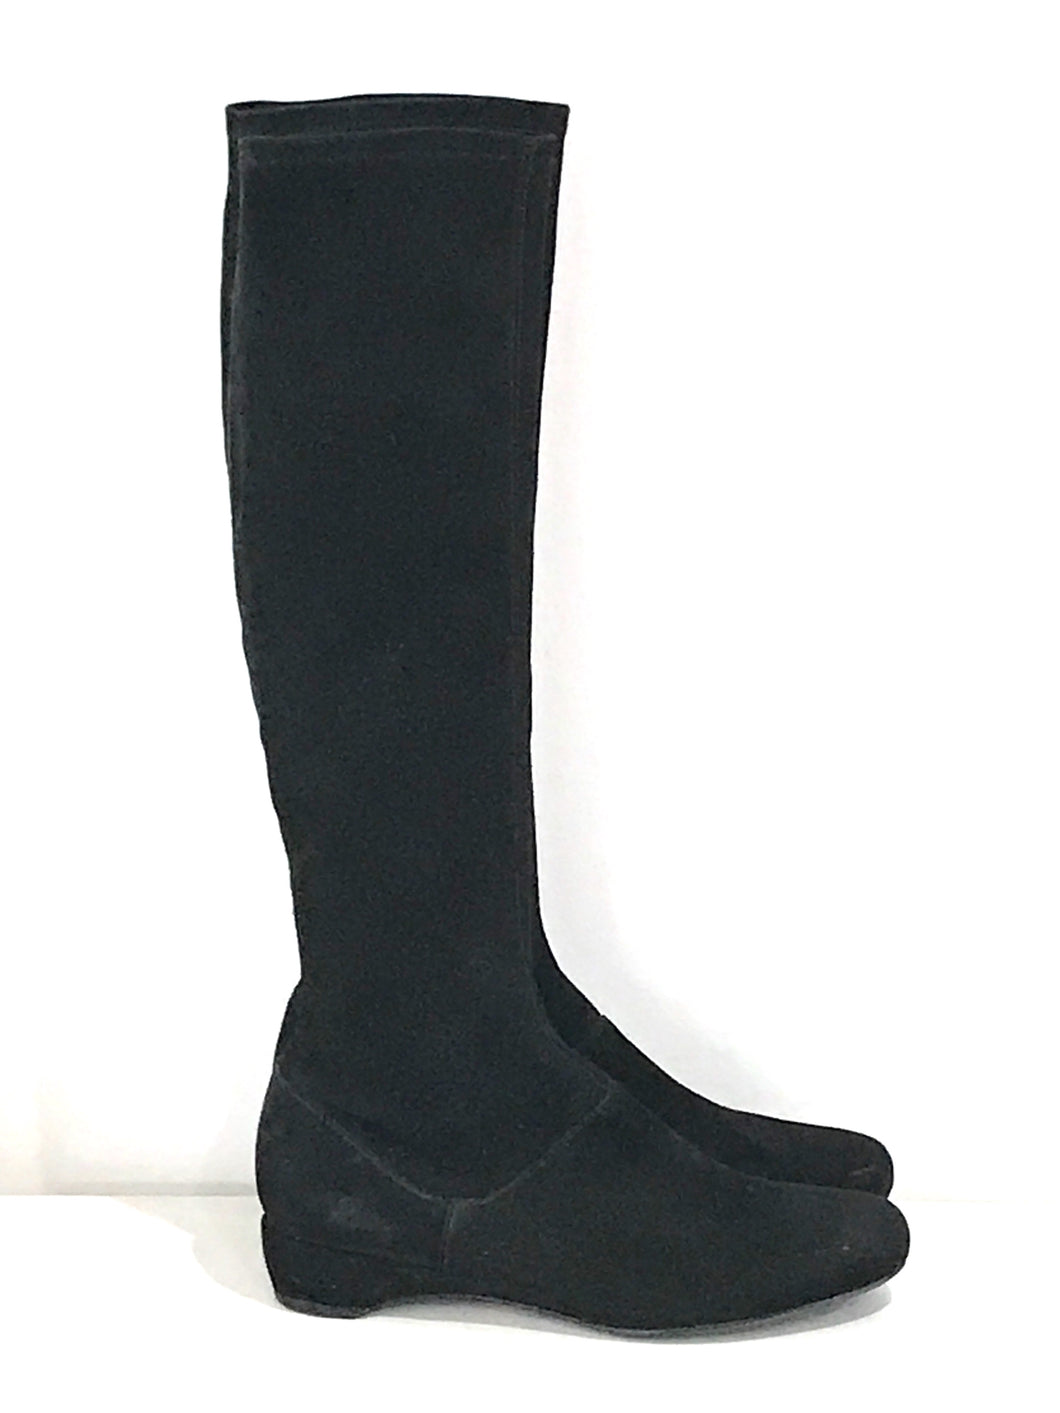 Suede Black Riding Boots